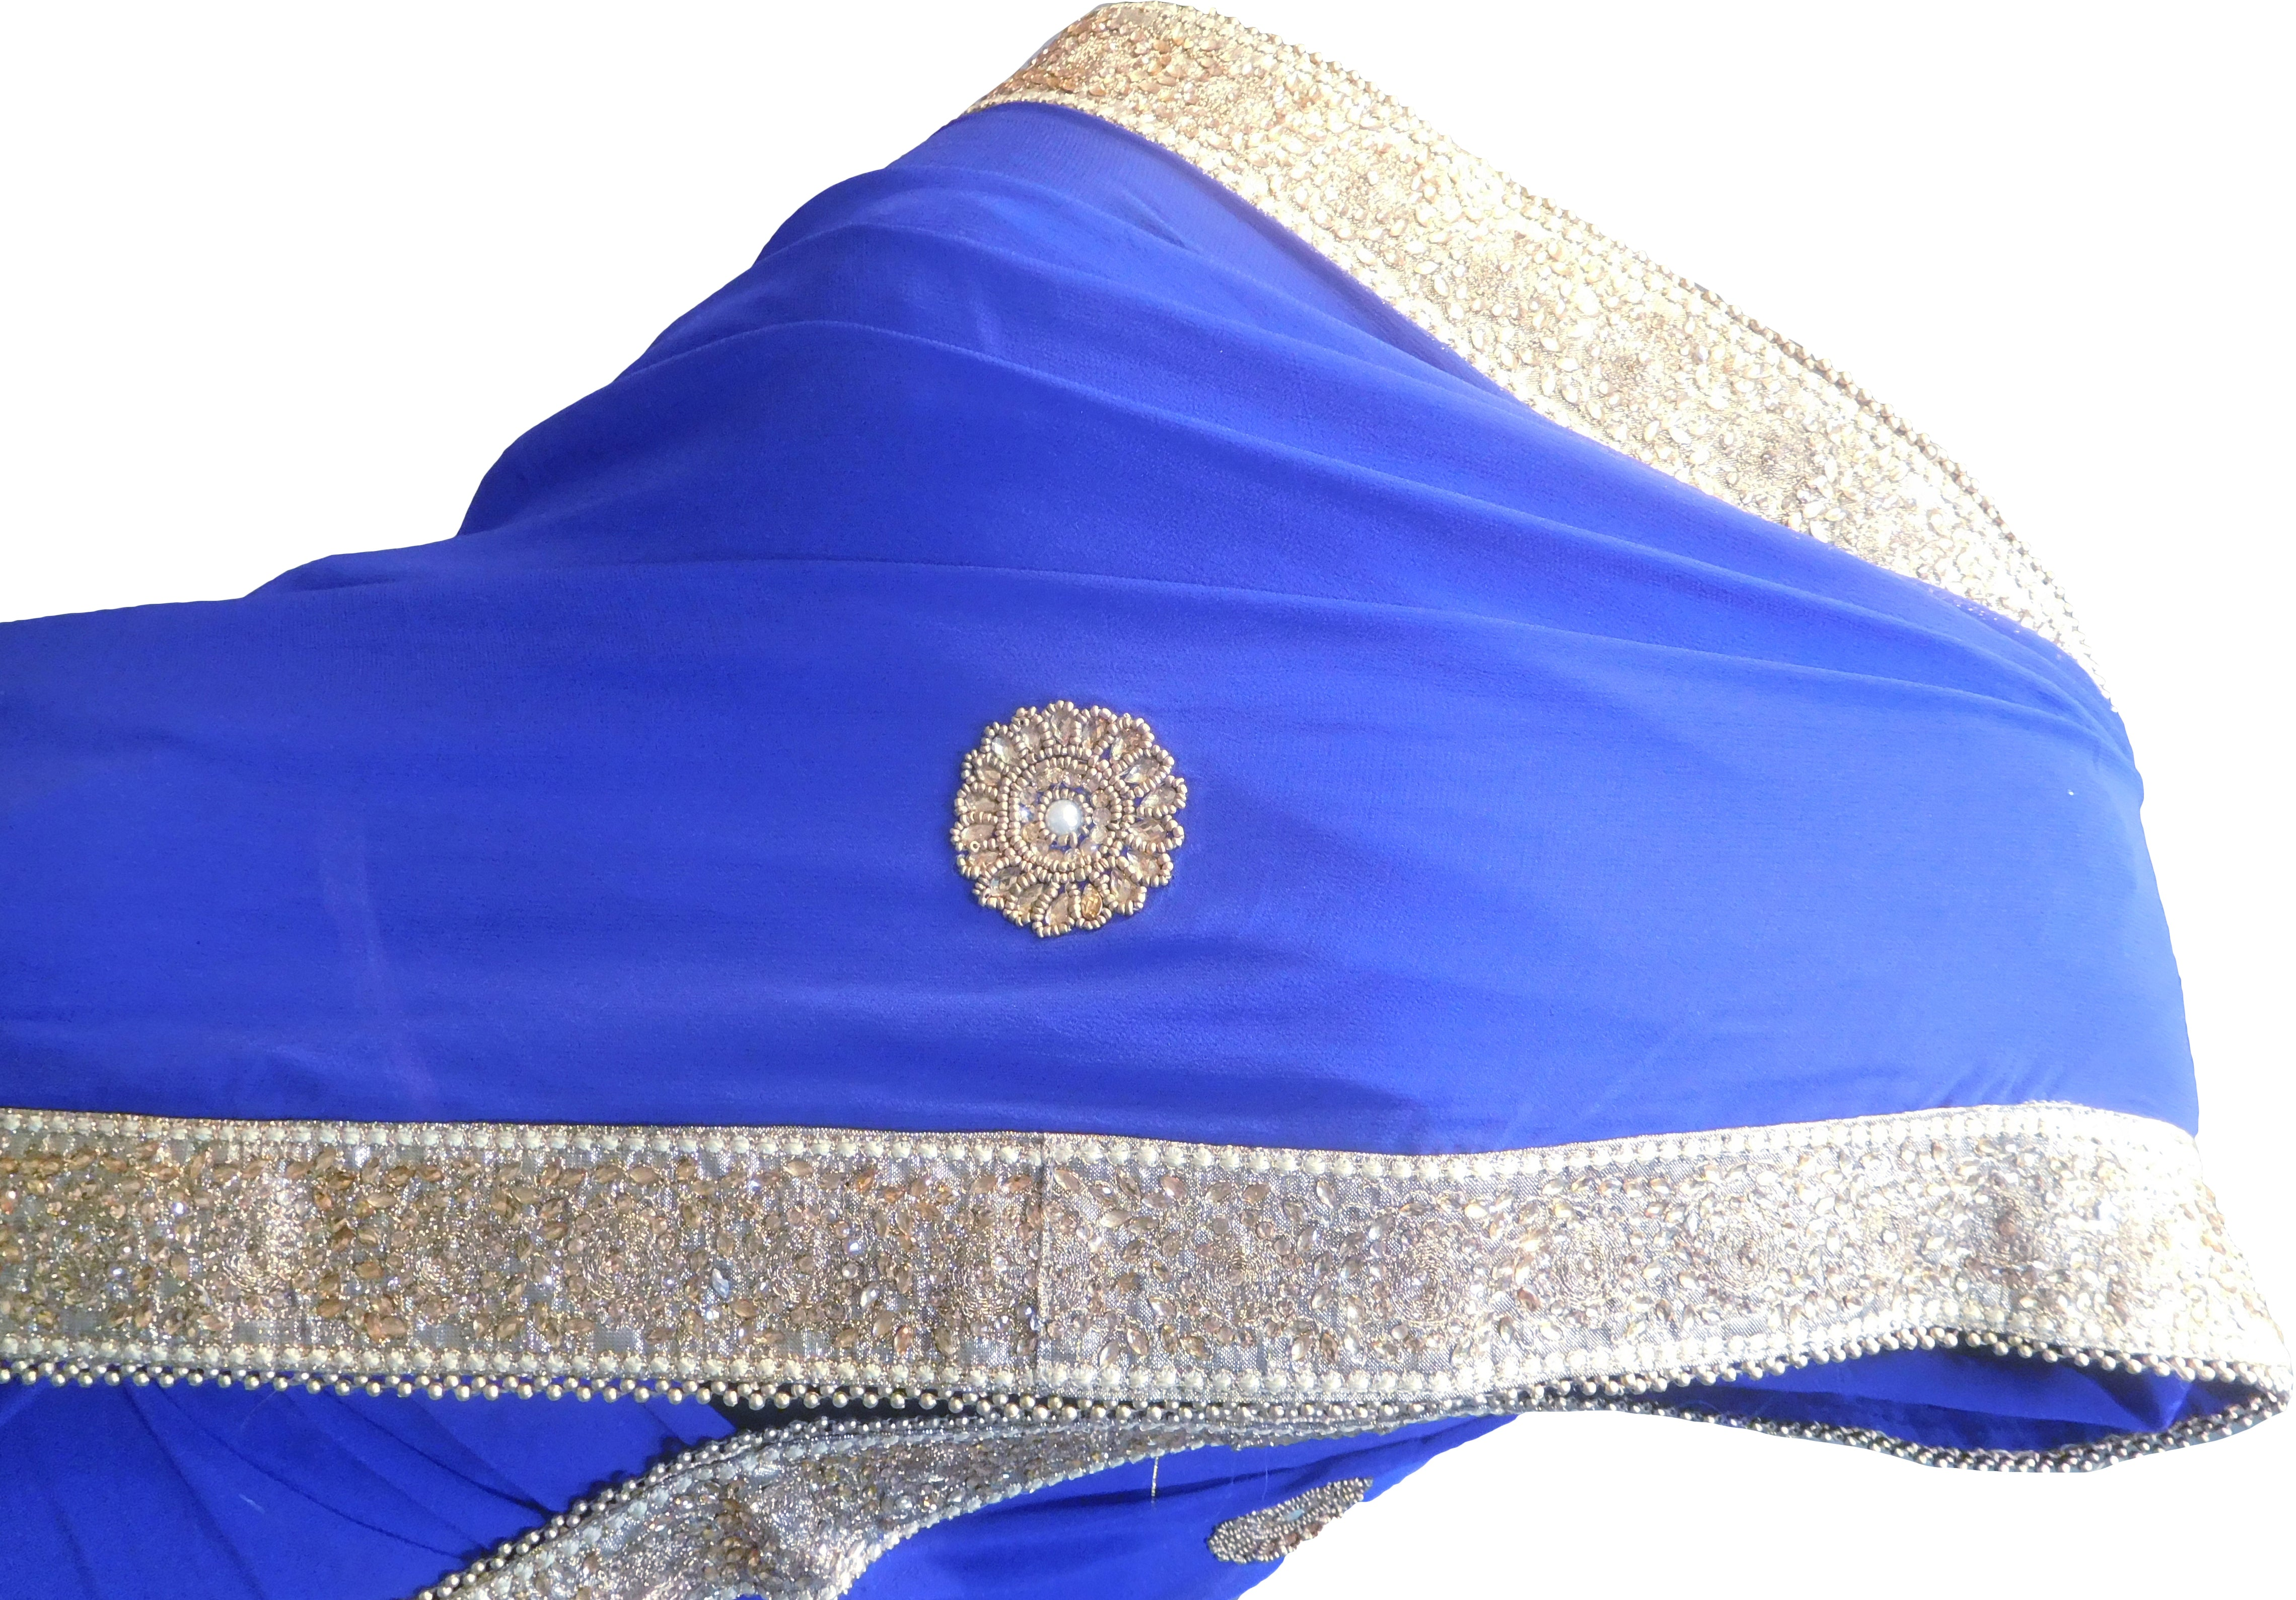 SMSAREE Blue Designer Wedding Partywear Georgette (Viscos) Stone Pearl Beads & Zari Hand Embroidery Work Bridal Saree Sari With Blouse Piece F431